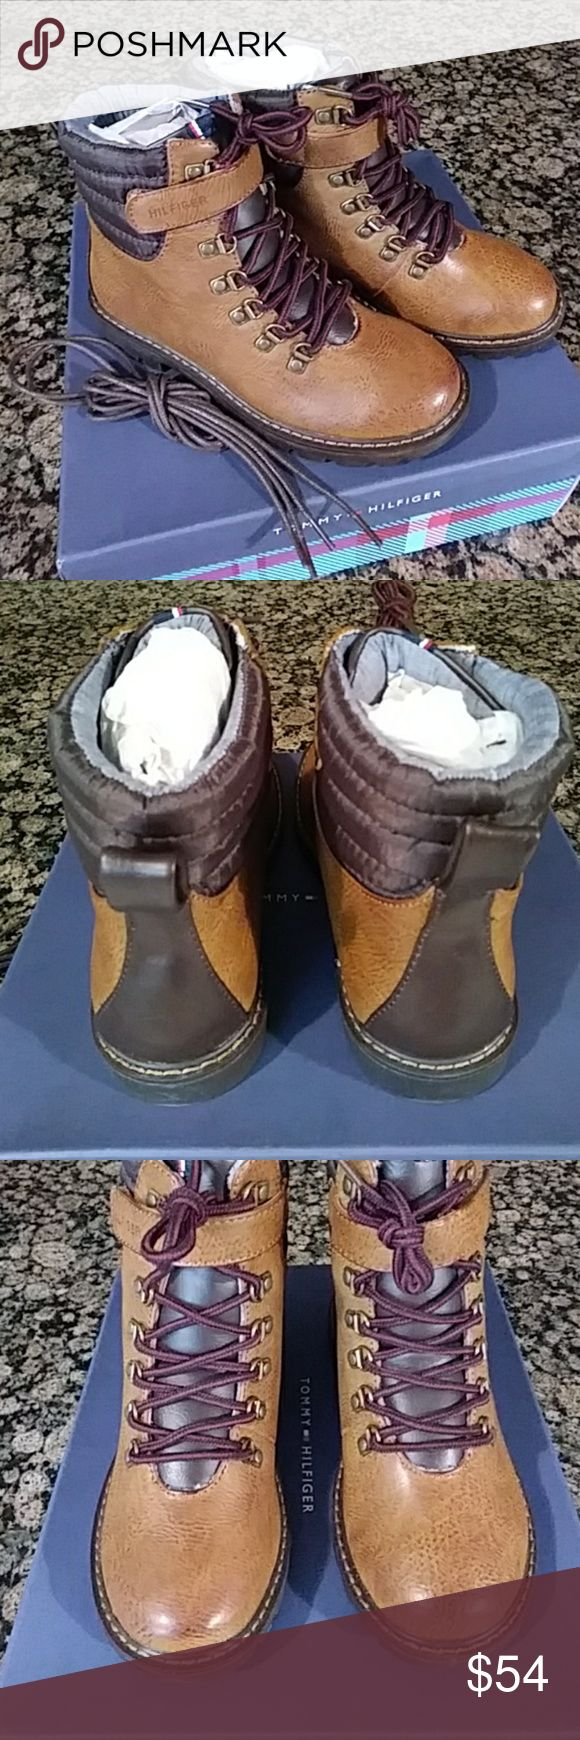 Tommy Hilfiger High Top Boots Tommy Hilfiger Jason High Top Boots boys size - 2 in brown. Lace up boots and come with a extra pair of Tommy leather laces too. Adjustable velcro strap on ankle. In perfect condition, brand new and never worn or tried on. Tommy Hilfiger Shoes Boots